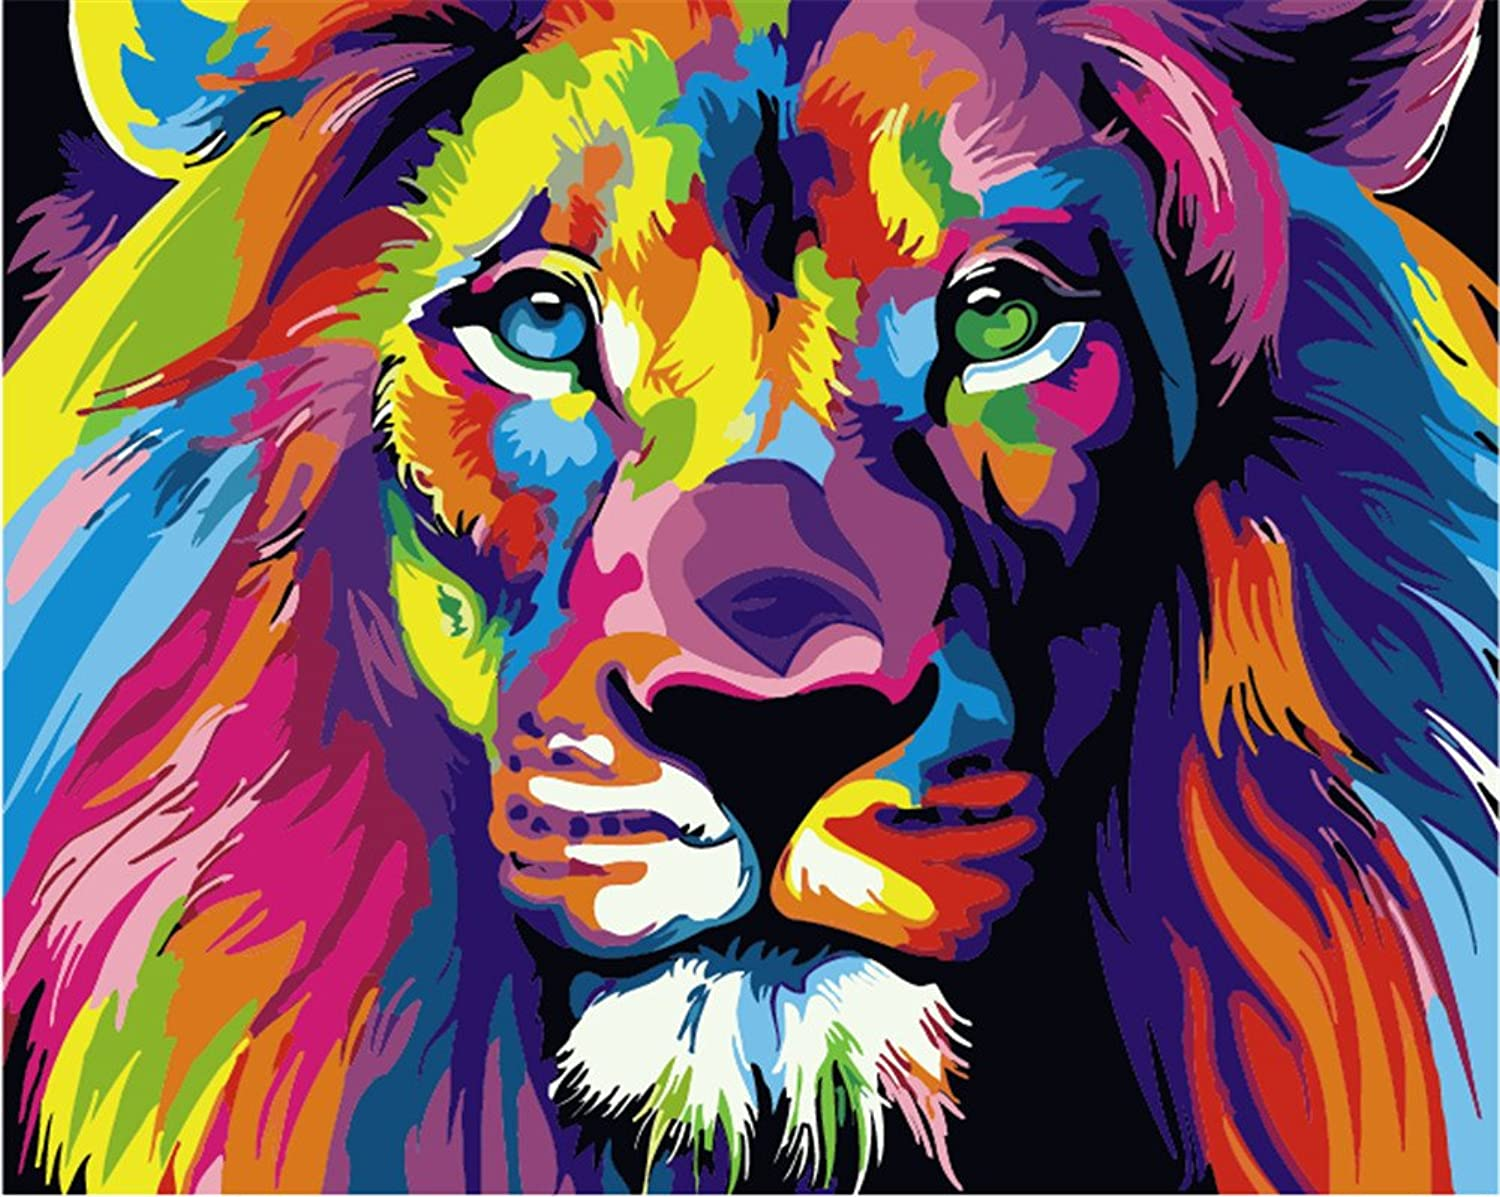 Komking DIY Oil Painting Paint by Numbers Kit for Adults Beginner, colorful Animals Painting on Canvas 16x20inch Frameless (colorful Lion Framed)